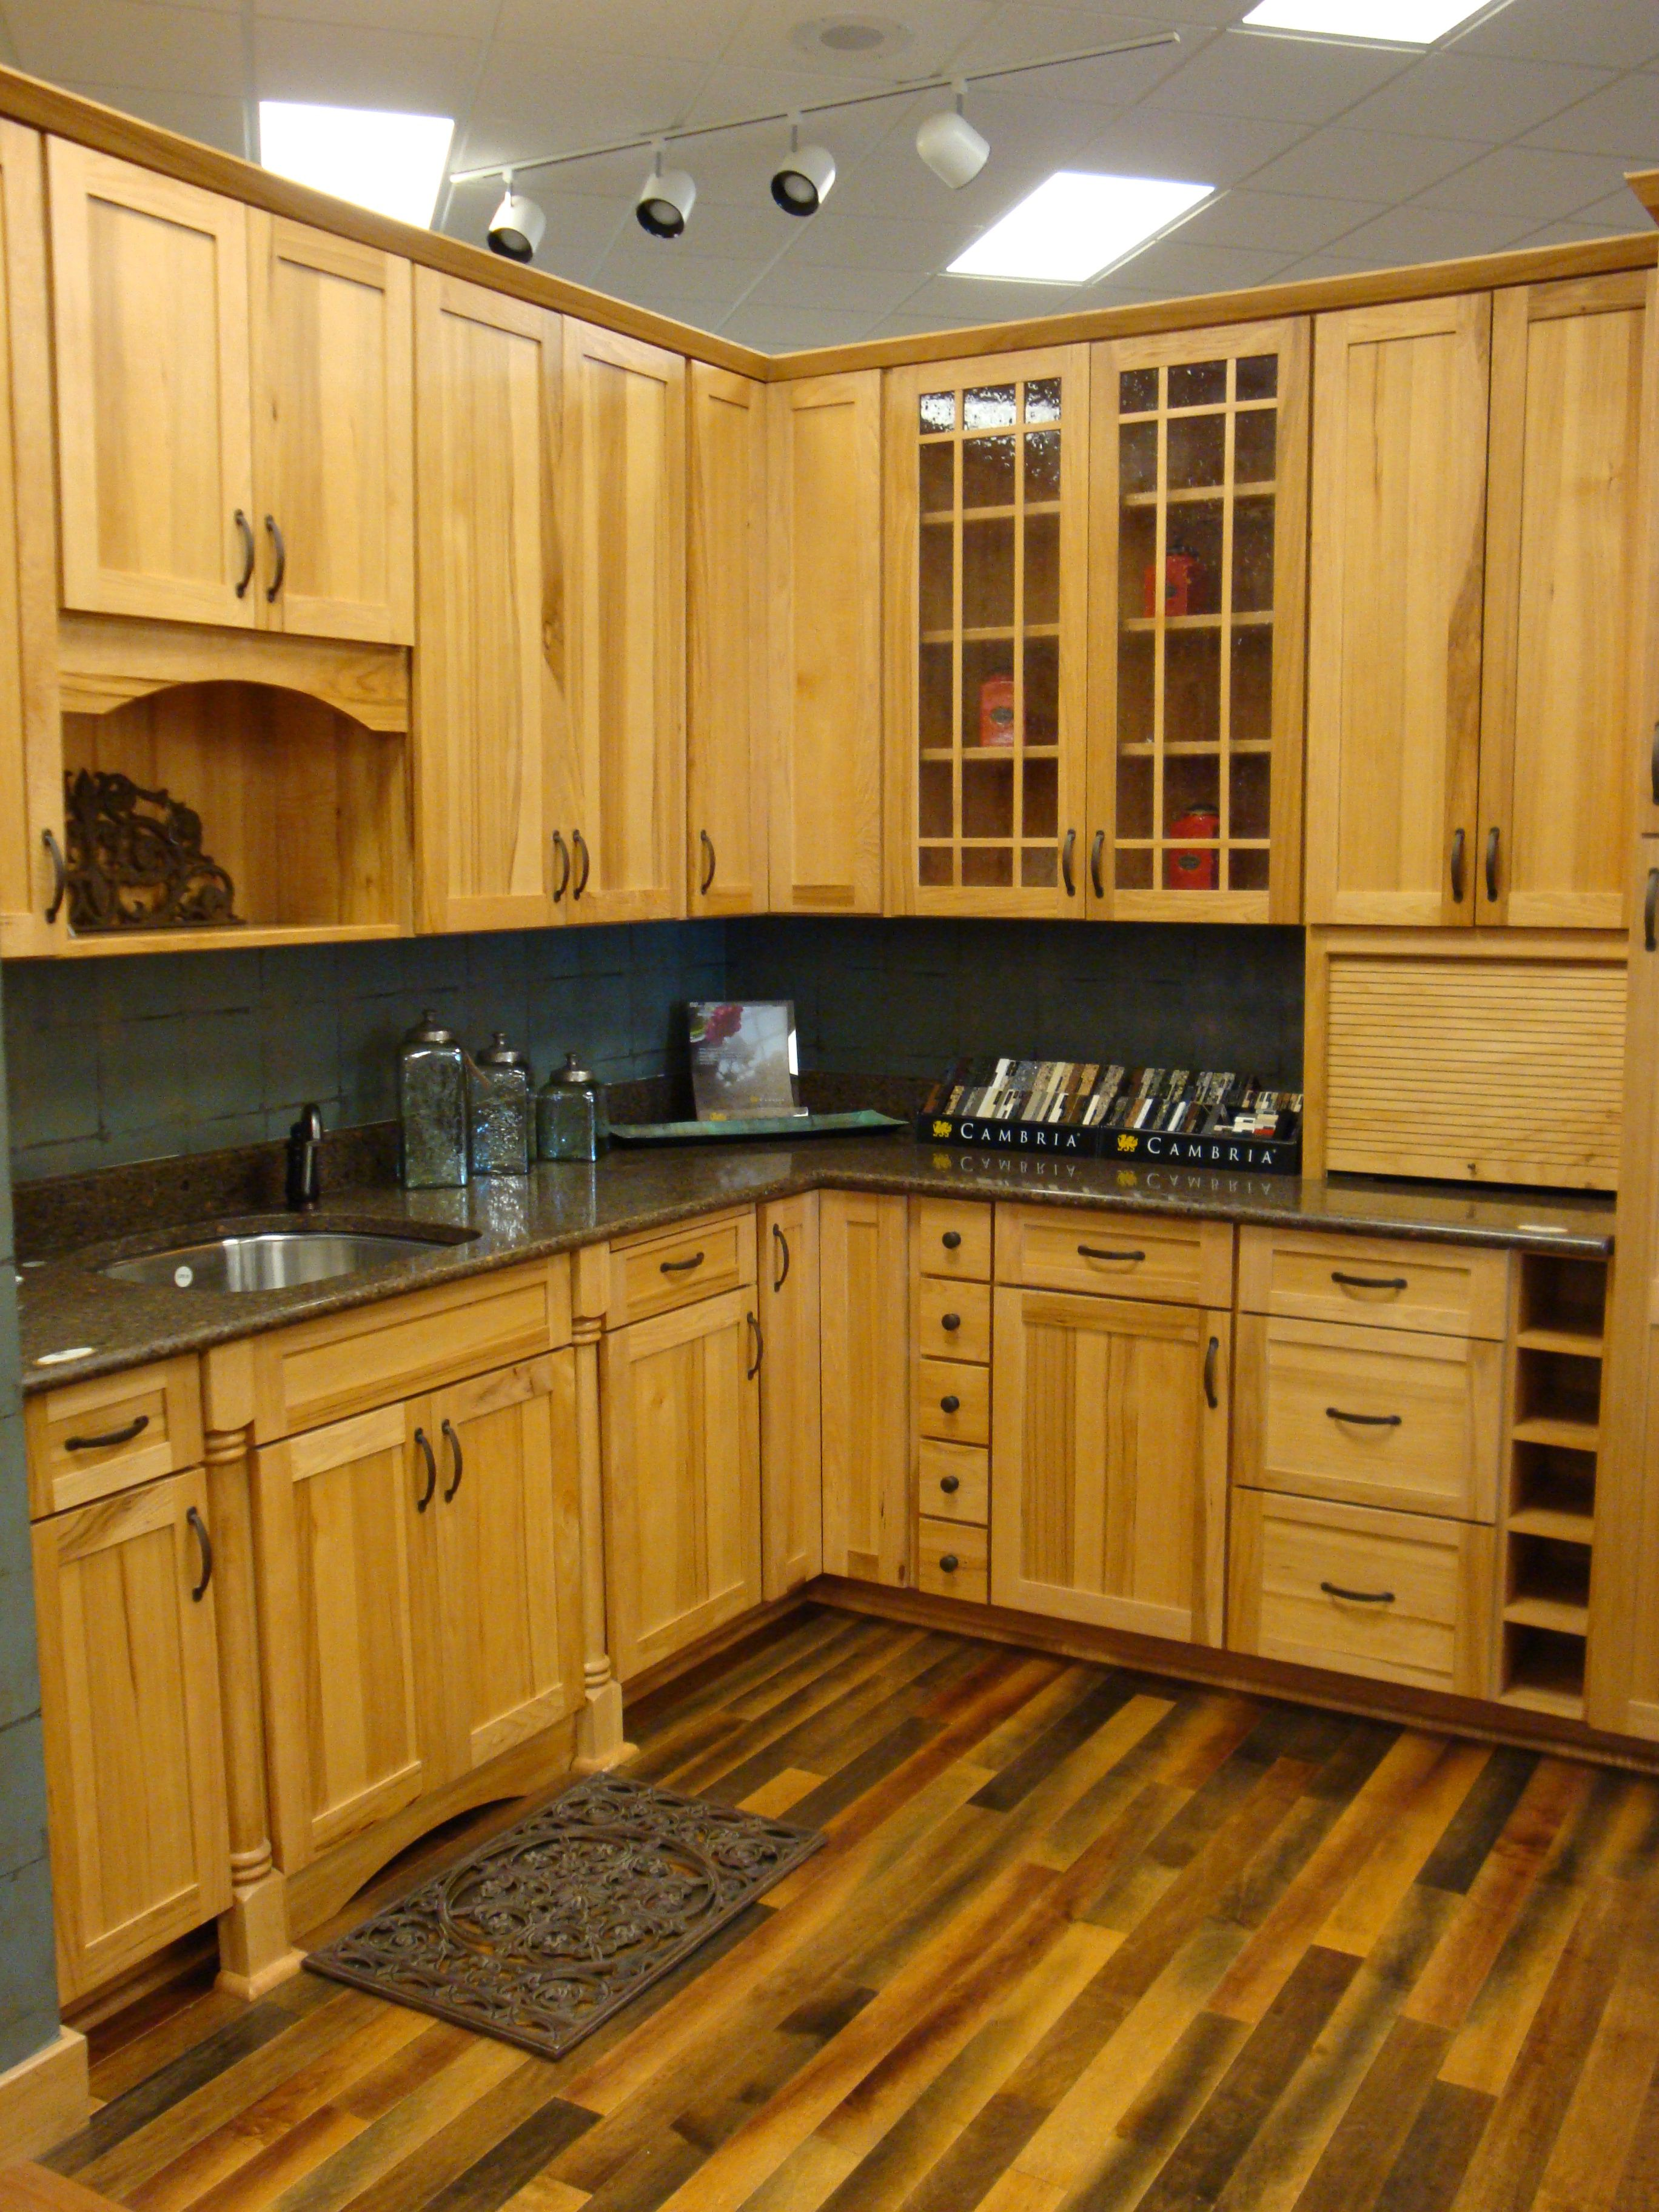 hickory cabinets with a maple hardwood floor new kitchen hickory cabinets kitchen design on kitchen remodel floor id=83169